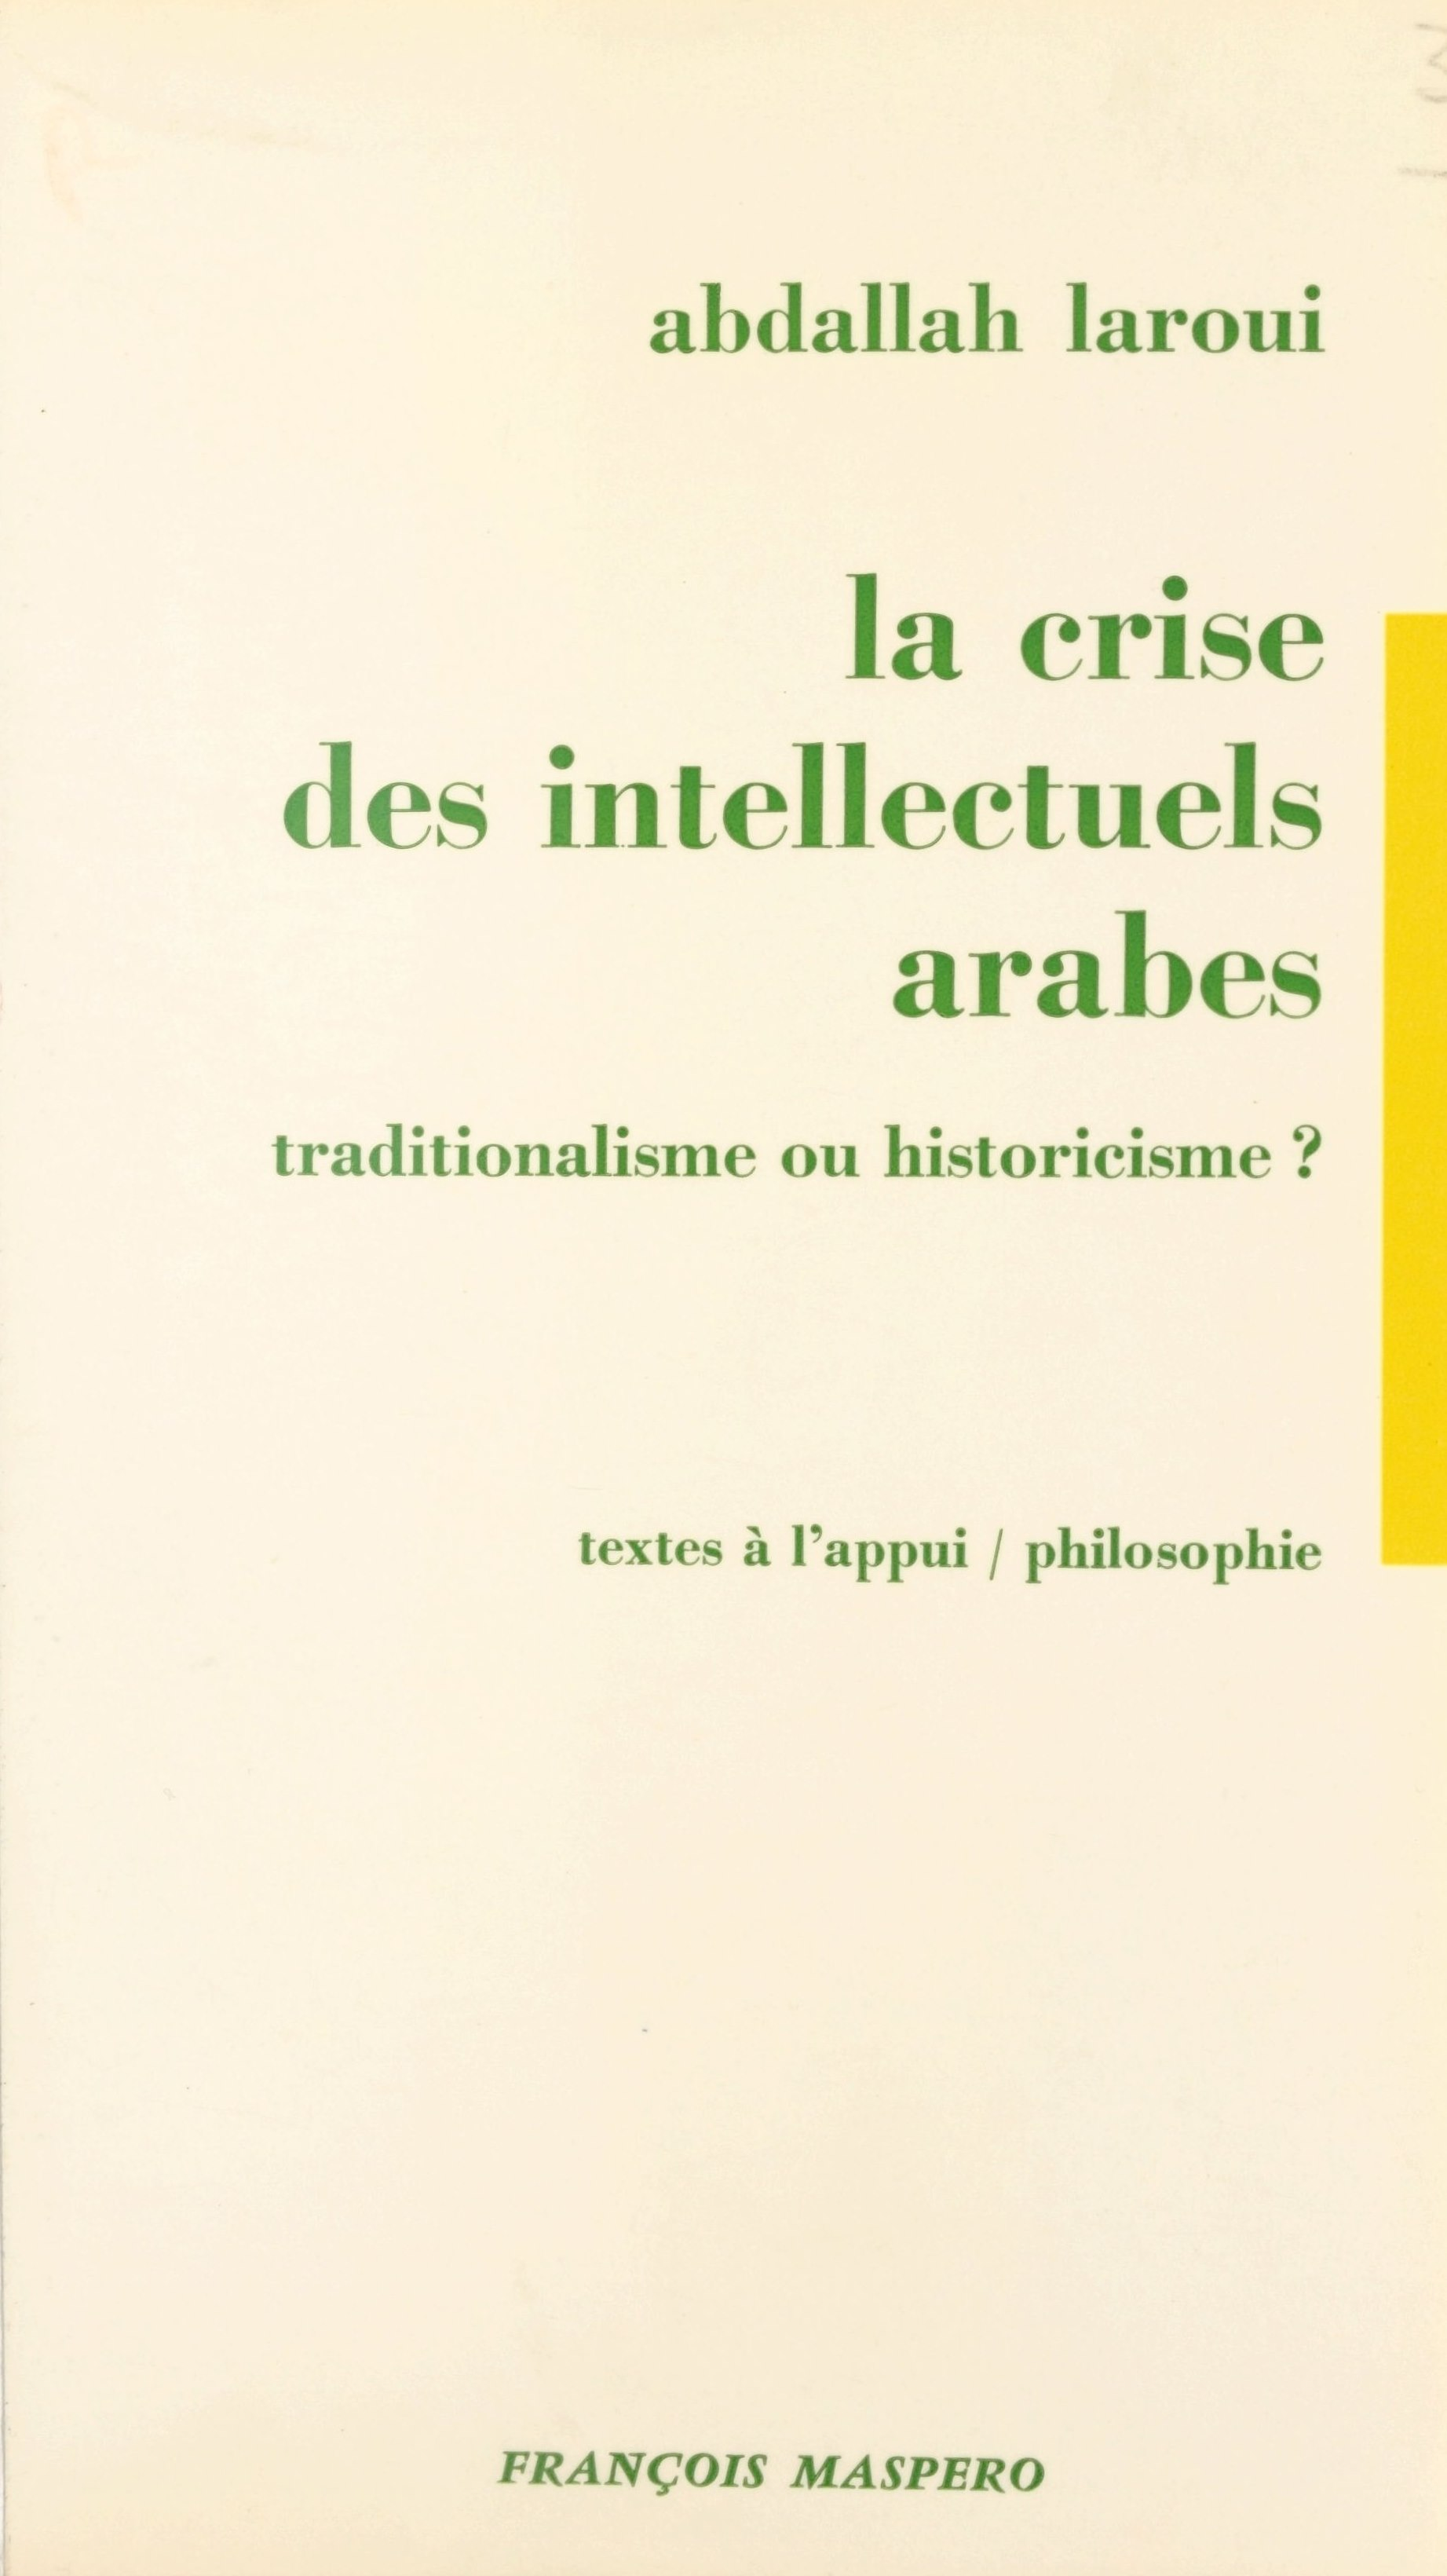 La crise des intellectuels arabes